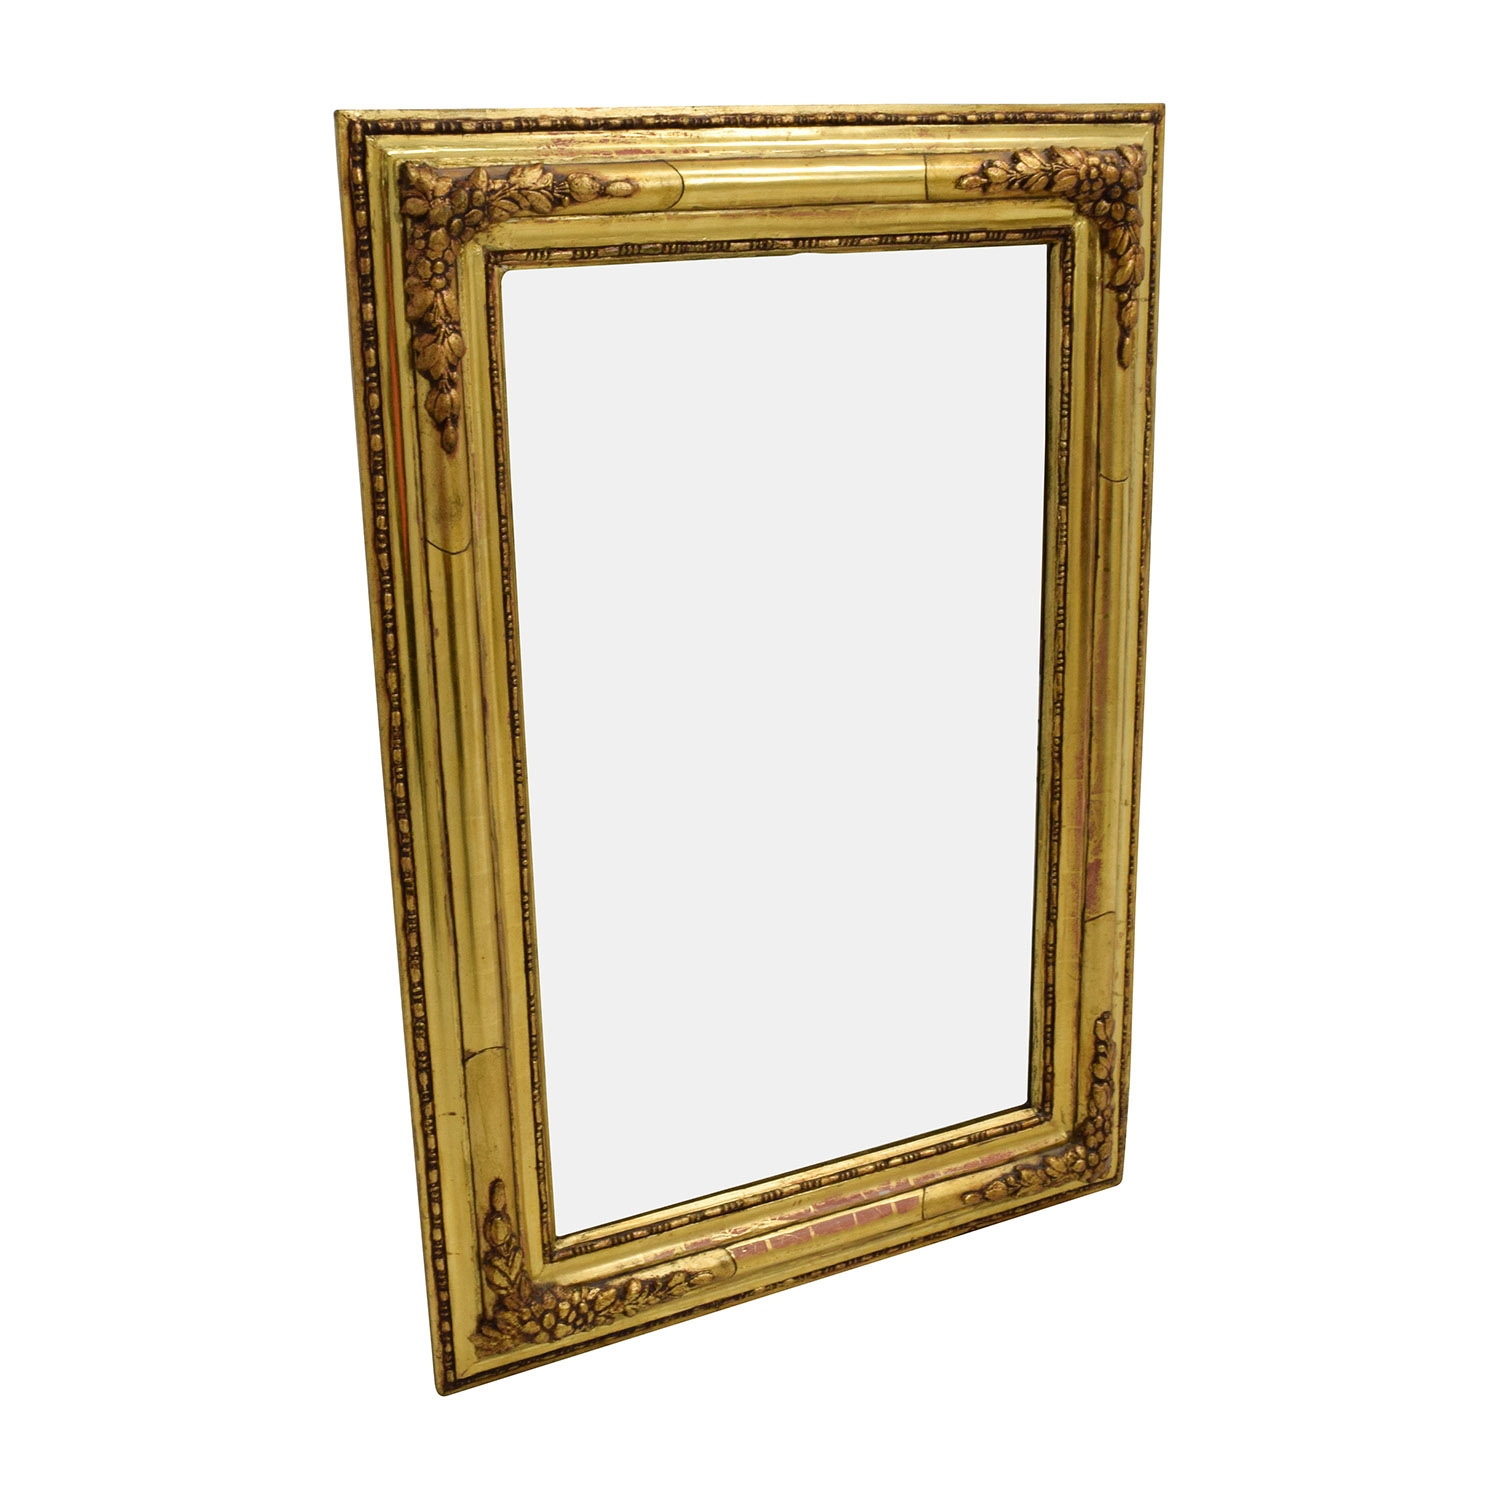 65 Off Gilt Edged Gold Frame Mirror Decor With Gilt Edged Mirrors (Image 2 of 15)